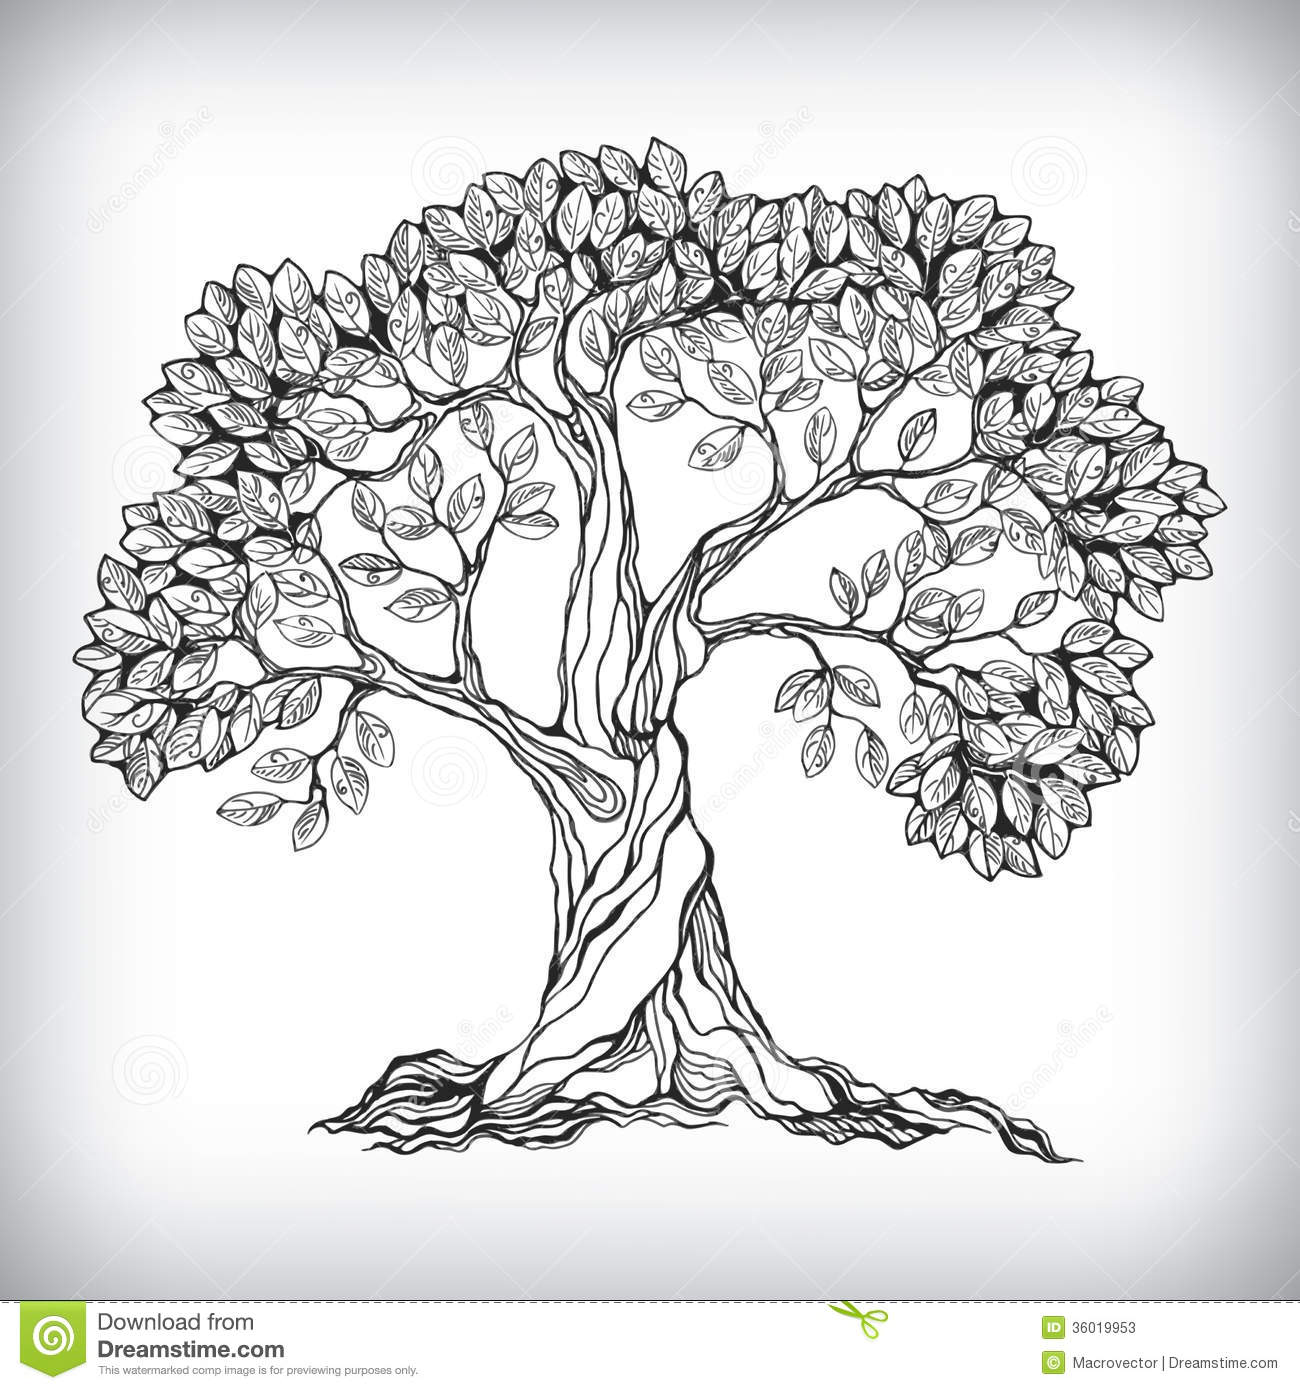 Line Drawing Ideas Ks : Hand drawn tree symbol stock vector illustration of black